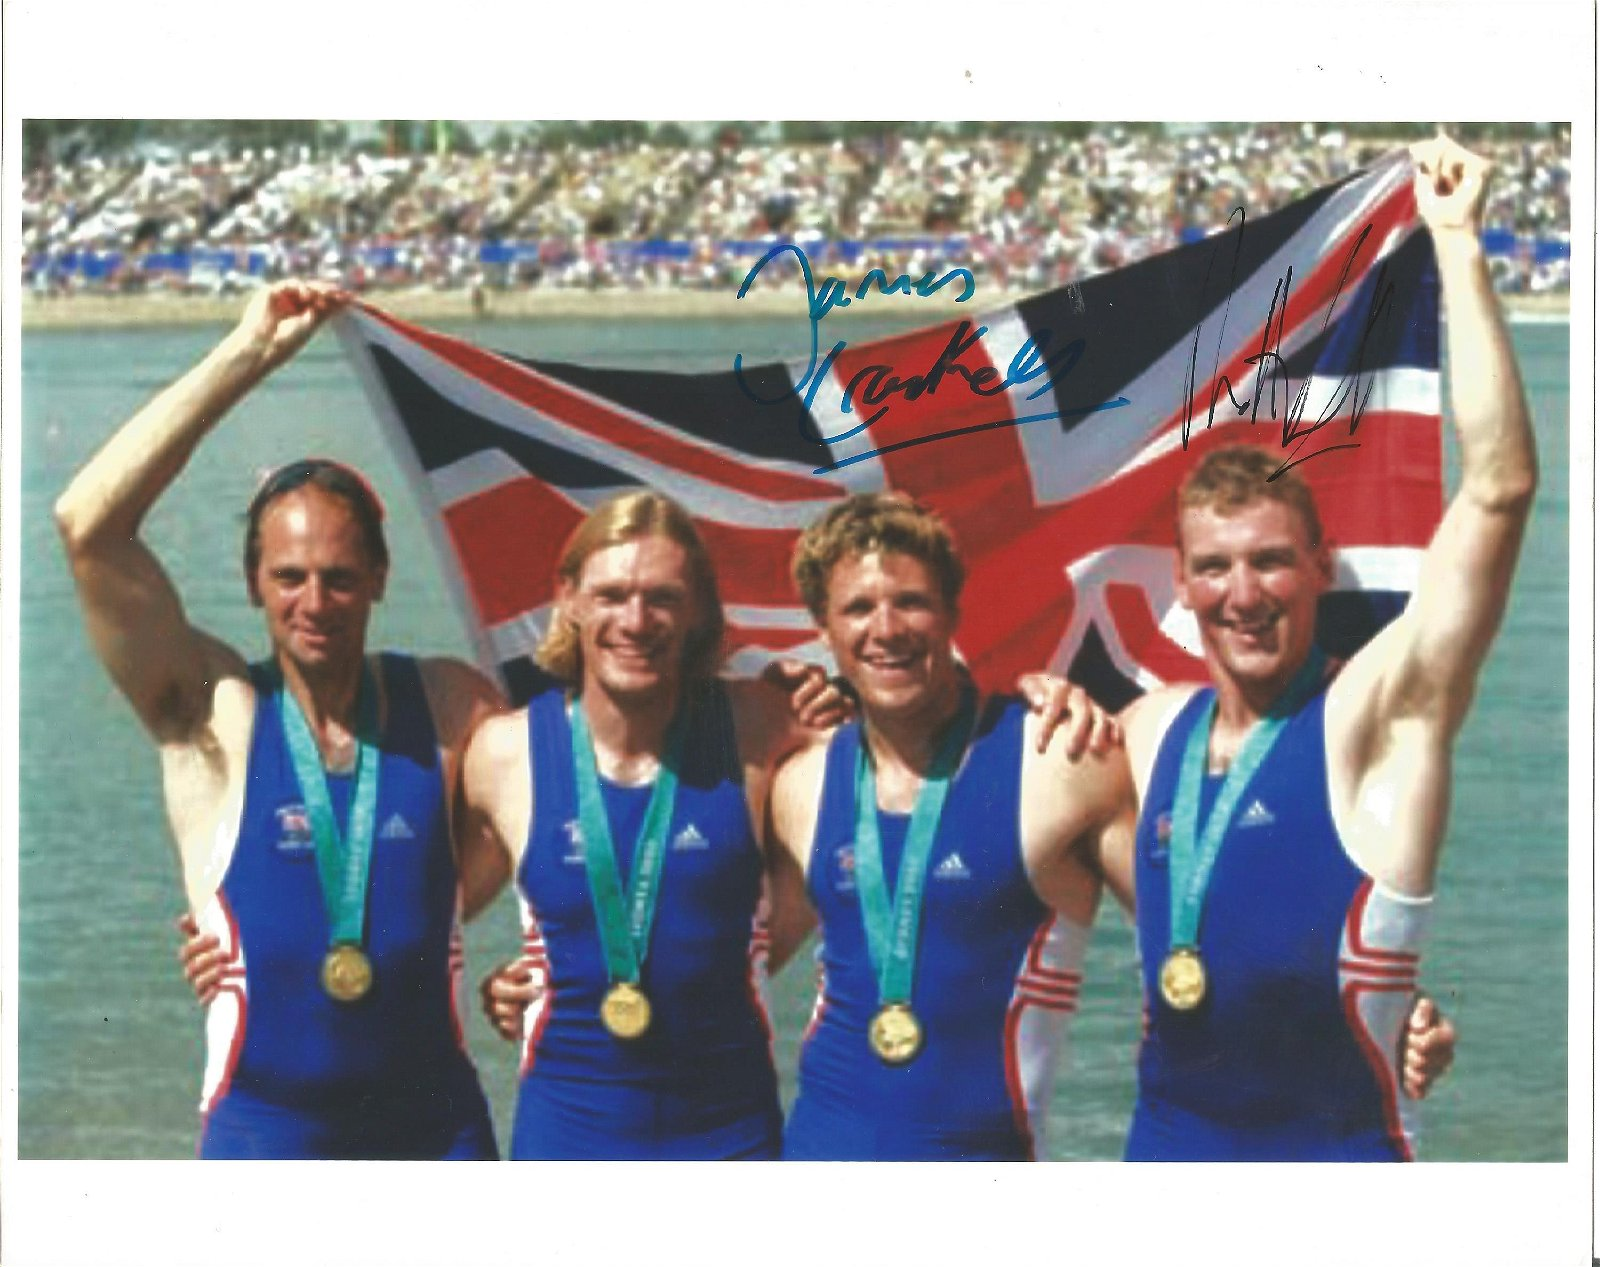 James Cracknell and Matthew Pinsent Signed With Olympic